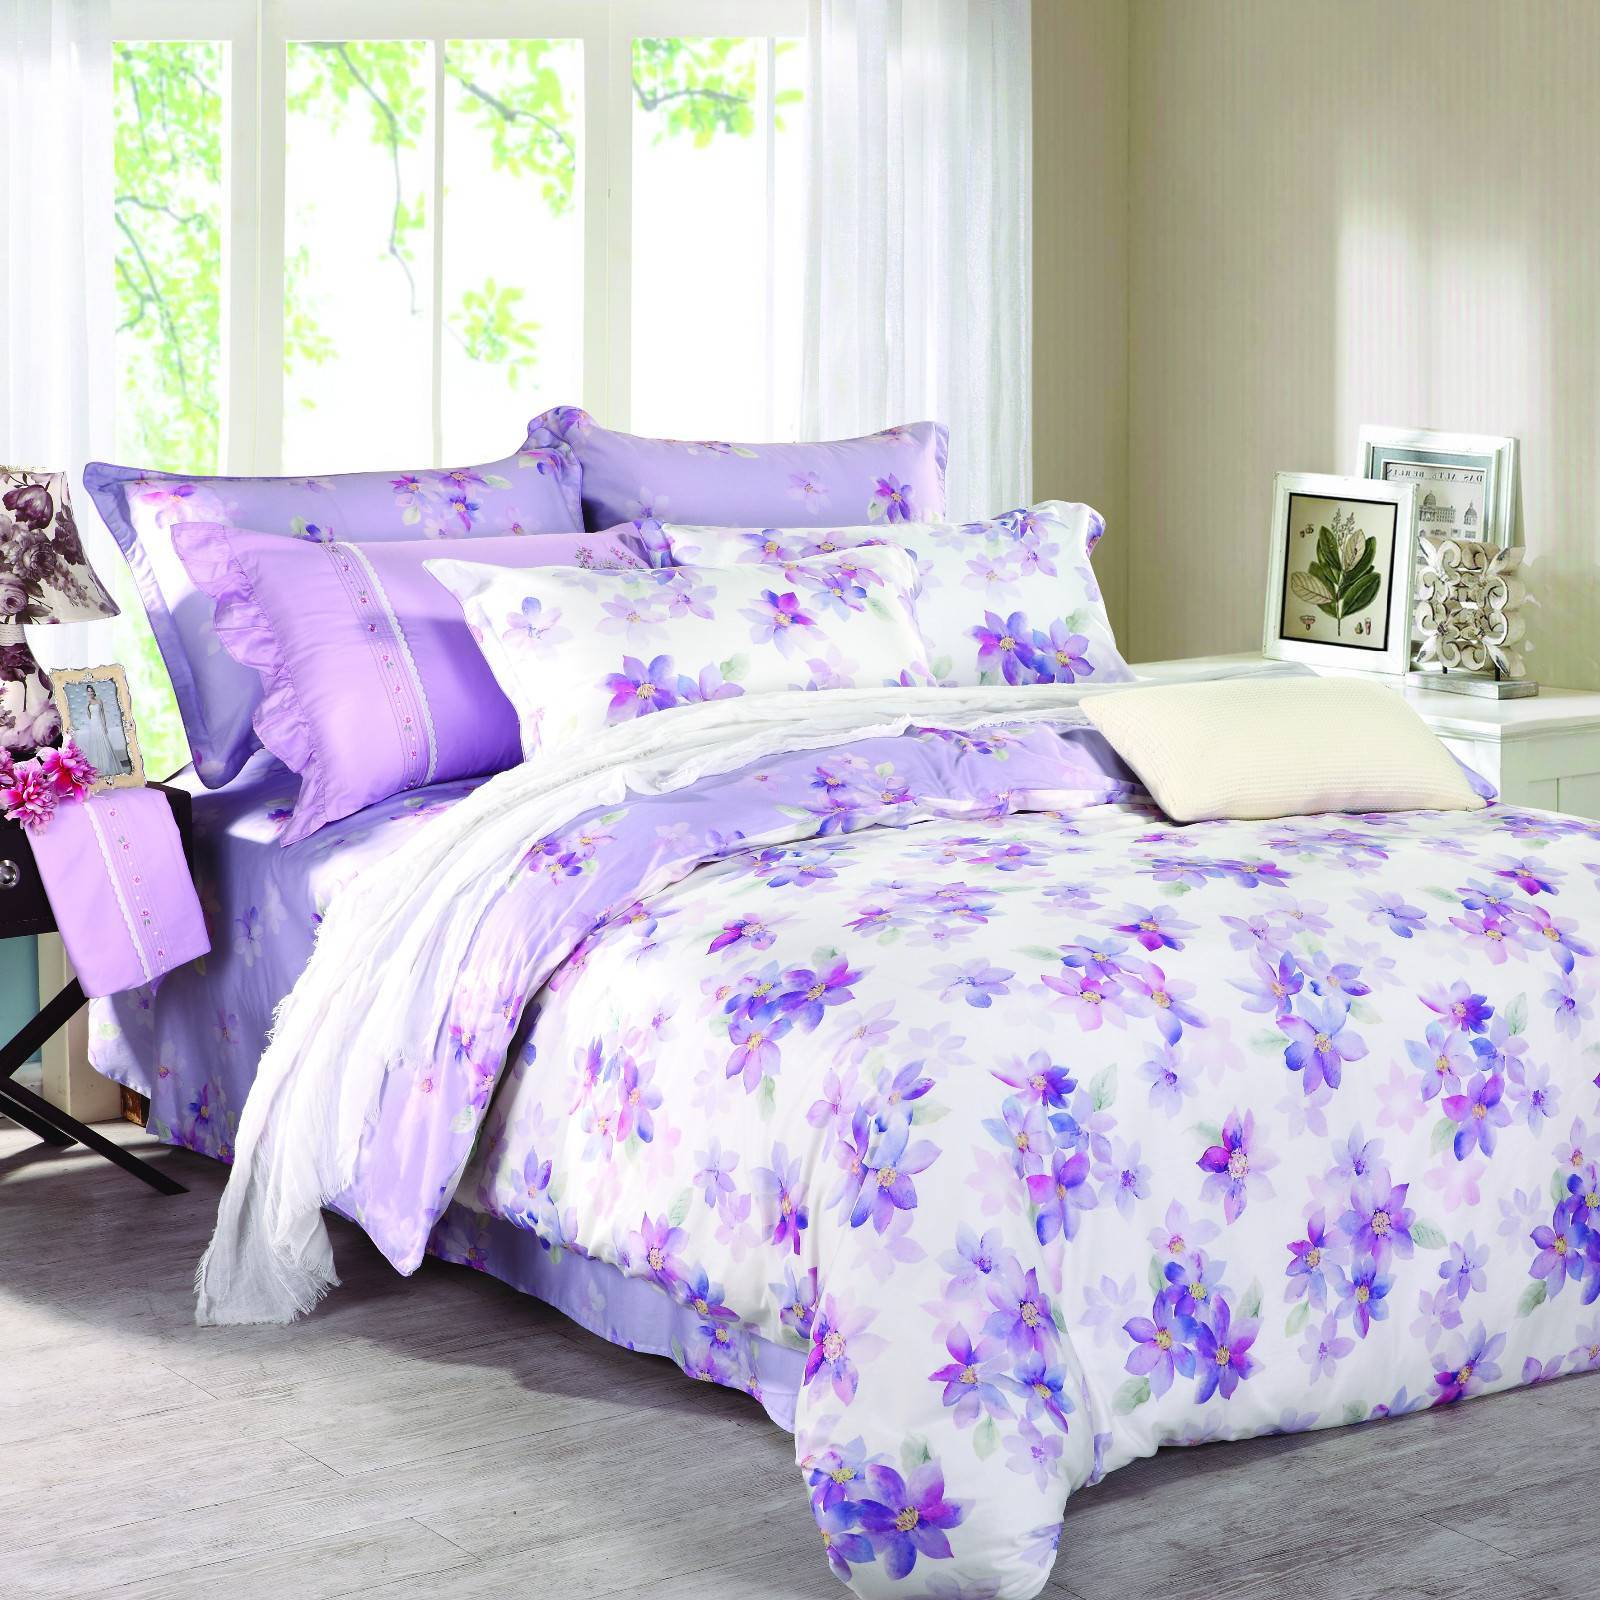 Daphne Purple Floral Printed Cotton Duvet Cover Set  6826